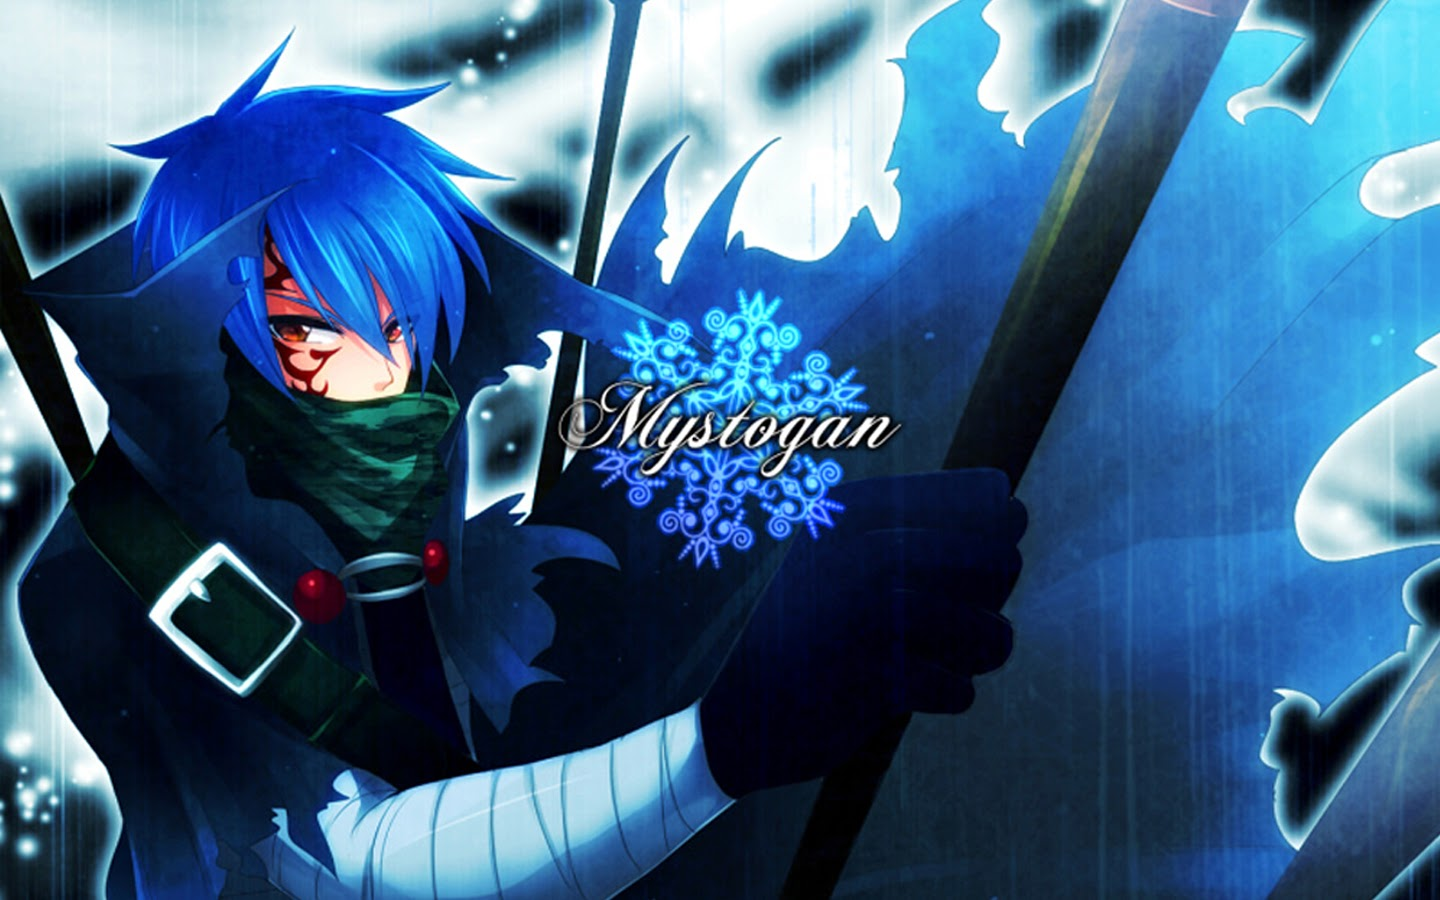 Free Download Mystogan Mage Anime Fairy Tail Hd Wallpaper